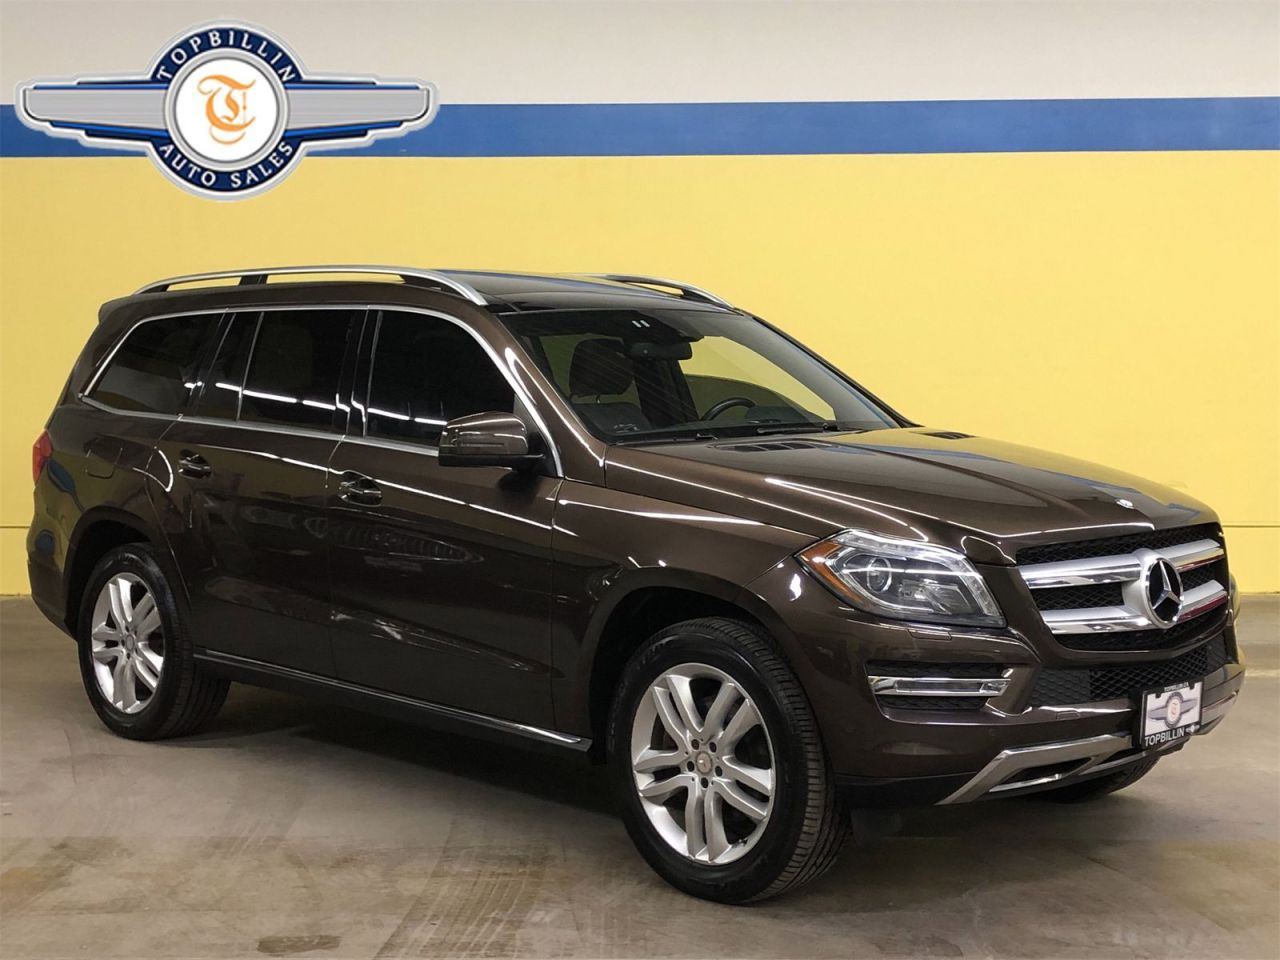 2014 Mercedes-Benz GL-Class GL 350 BlueTEC, Fully Loaded